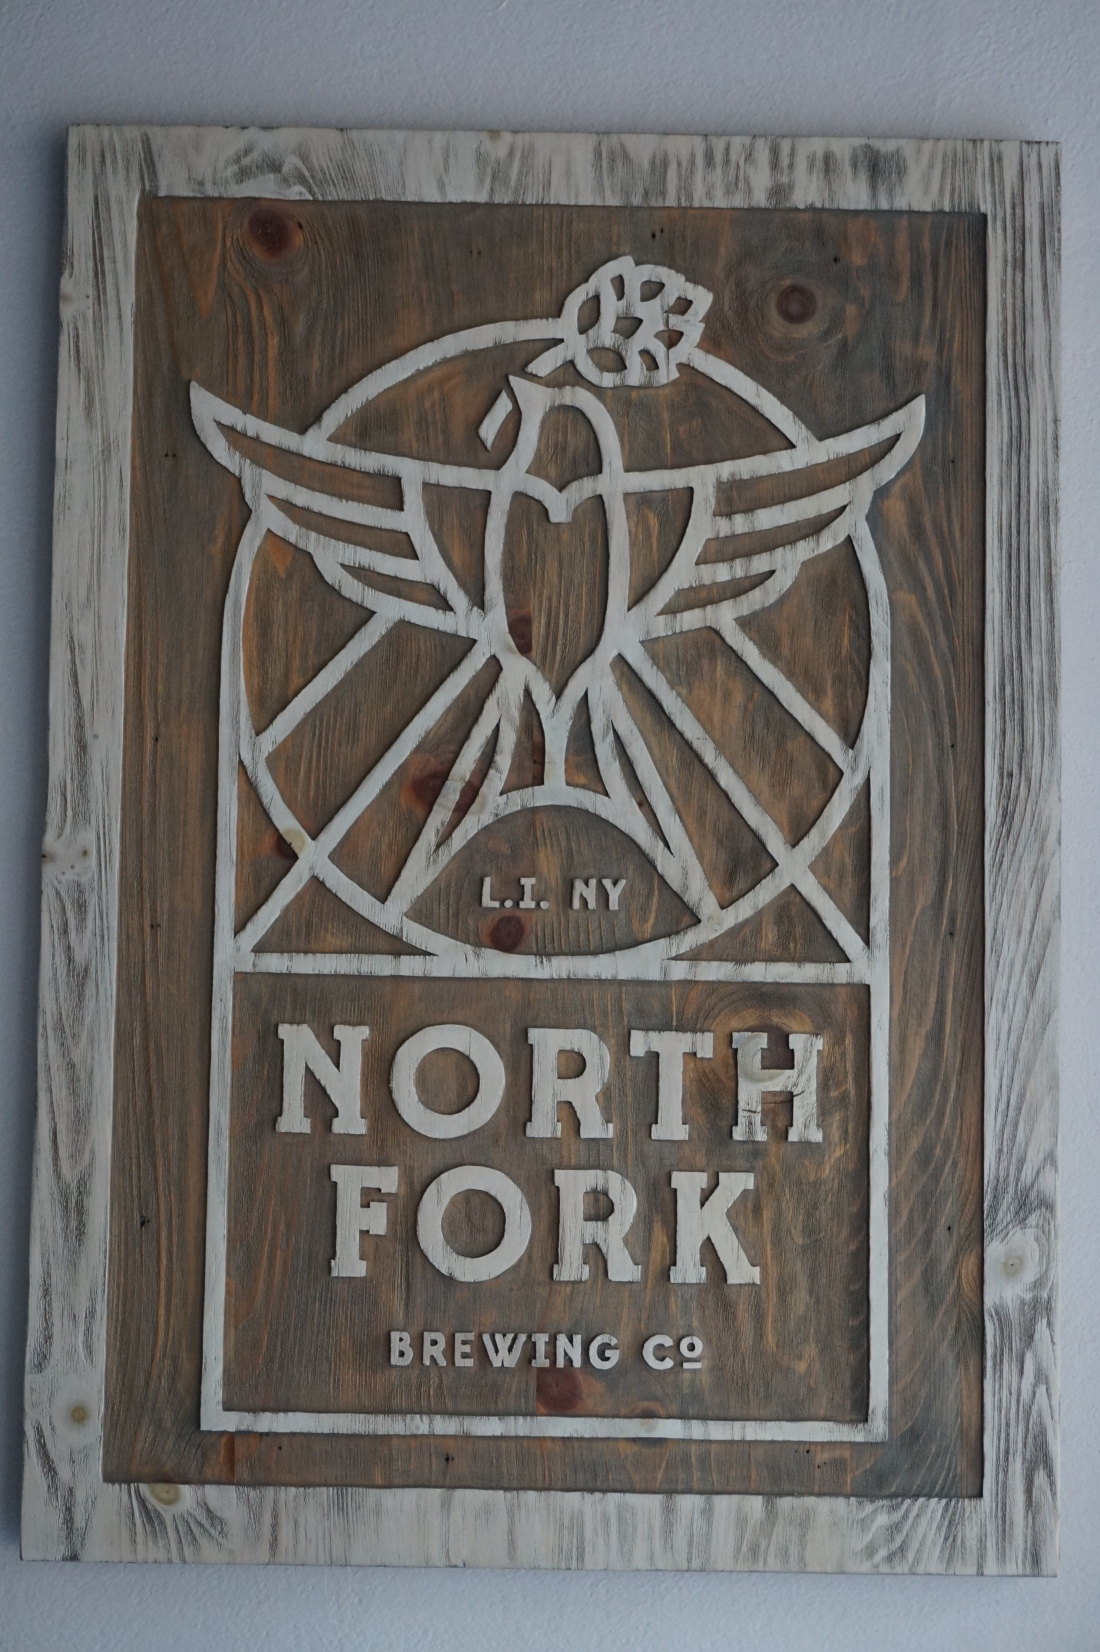 North Fork Brewing Co